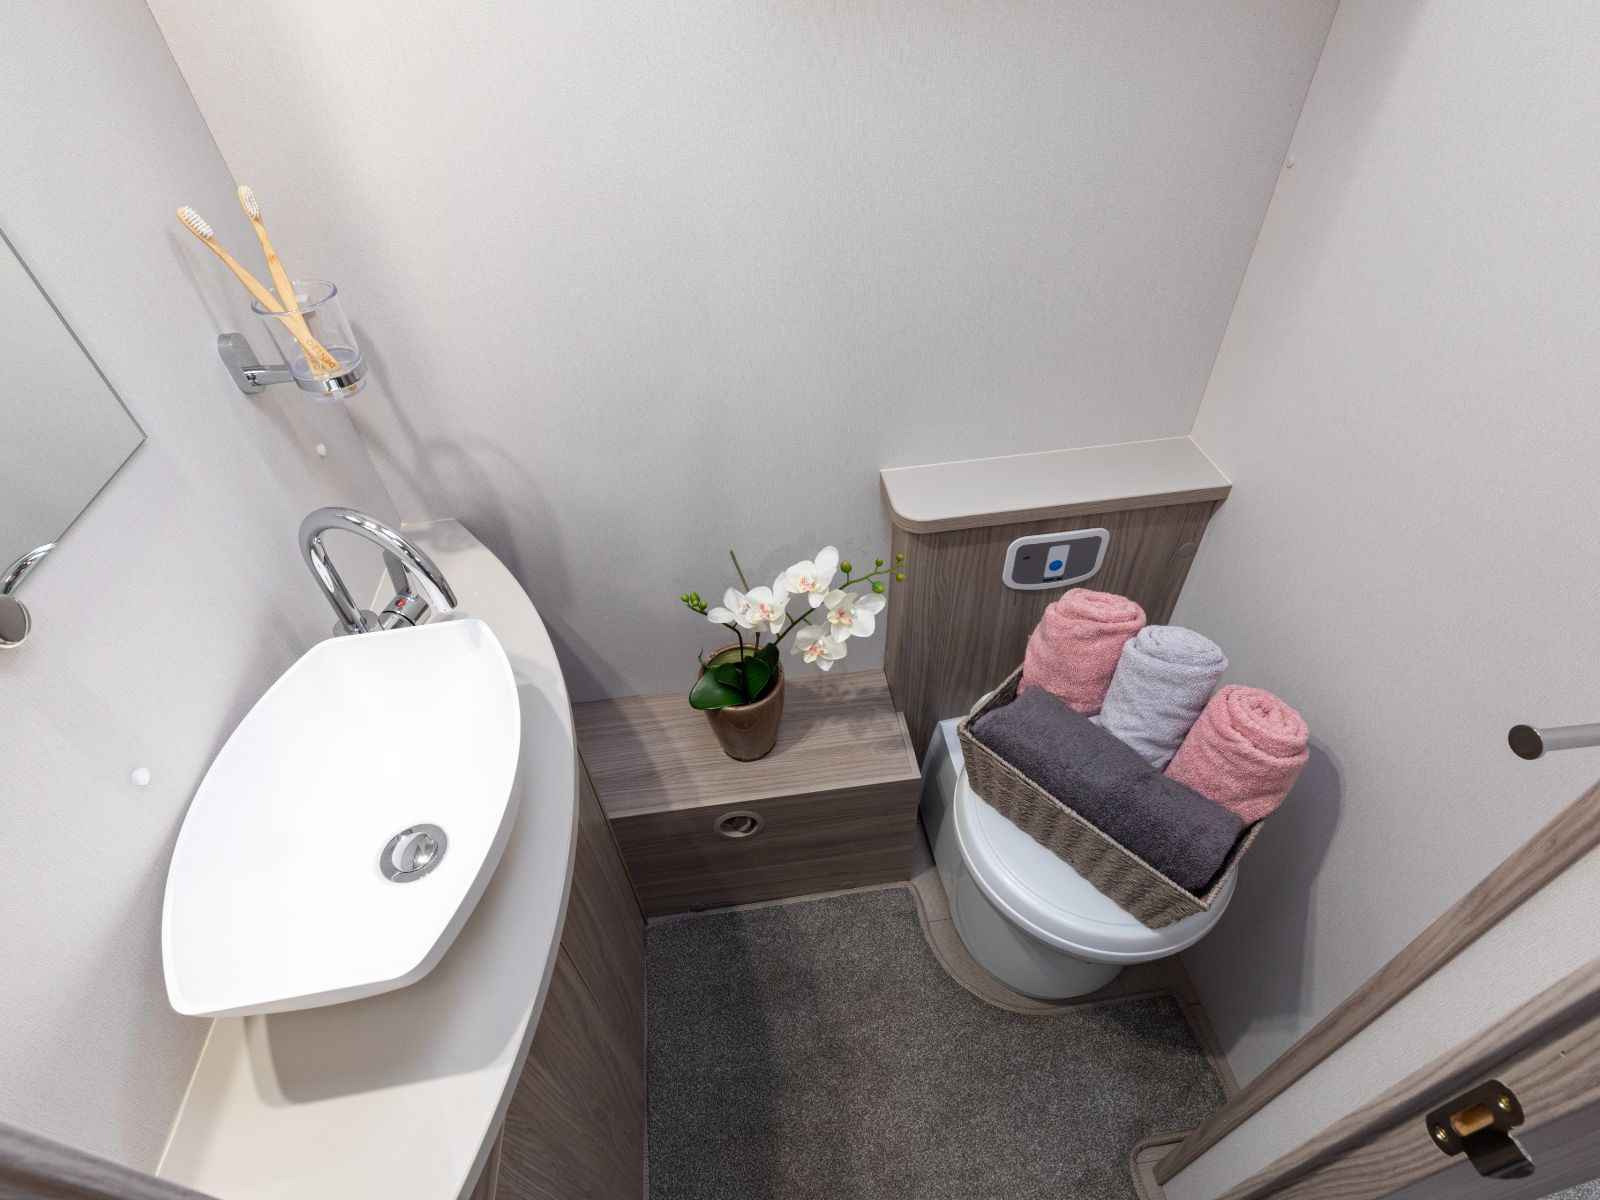 Toilet with basket of toiletries and towels on top '